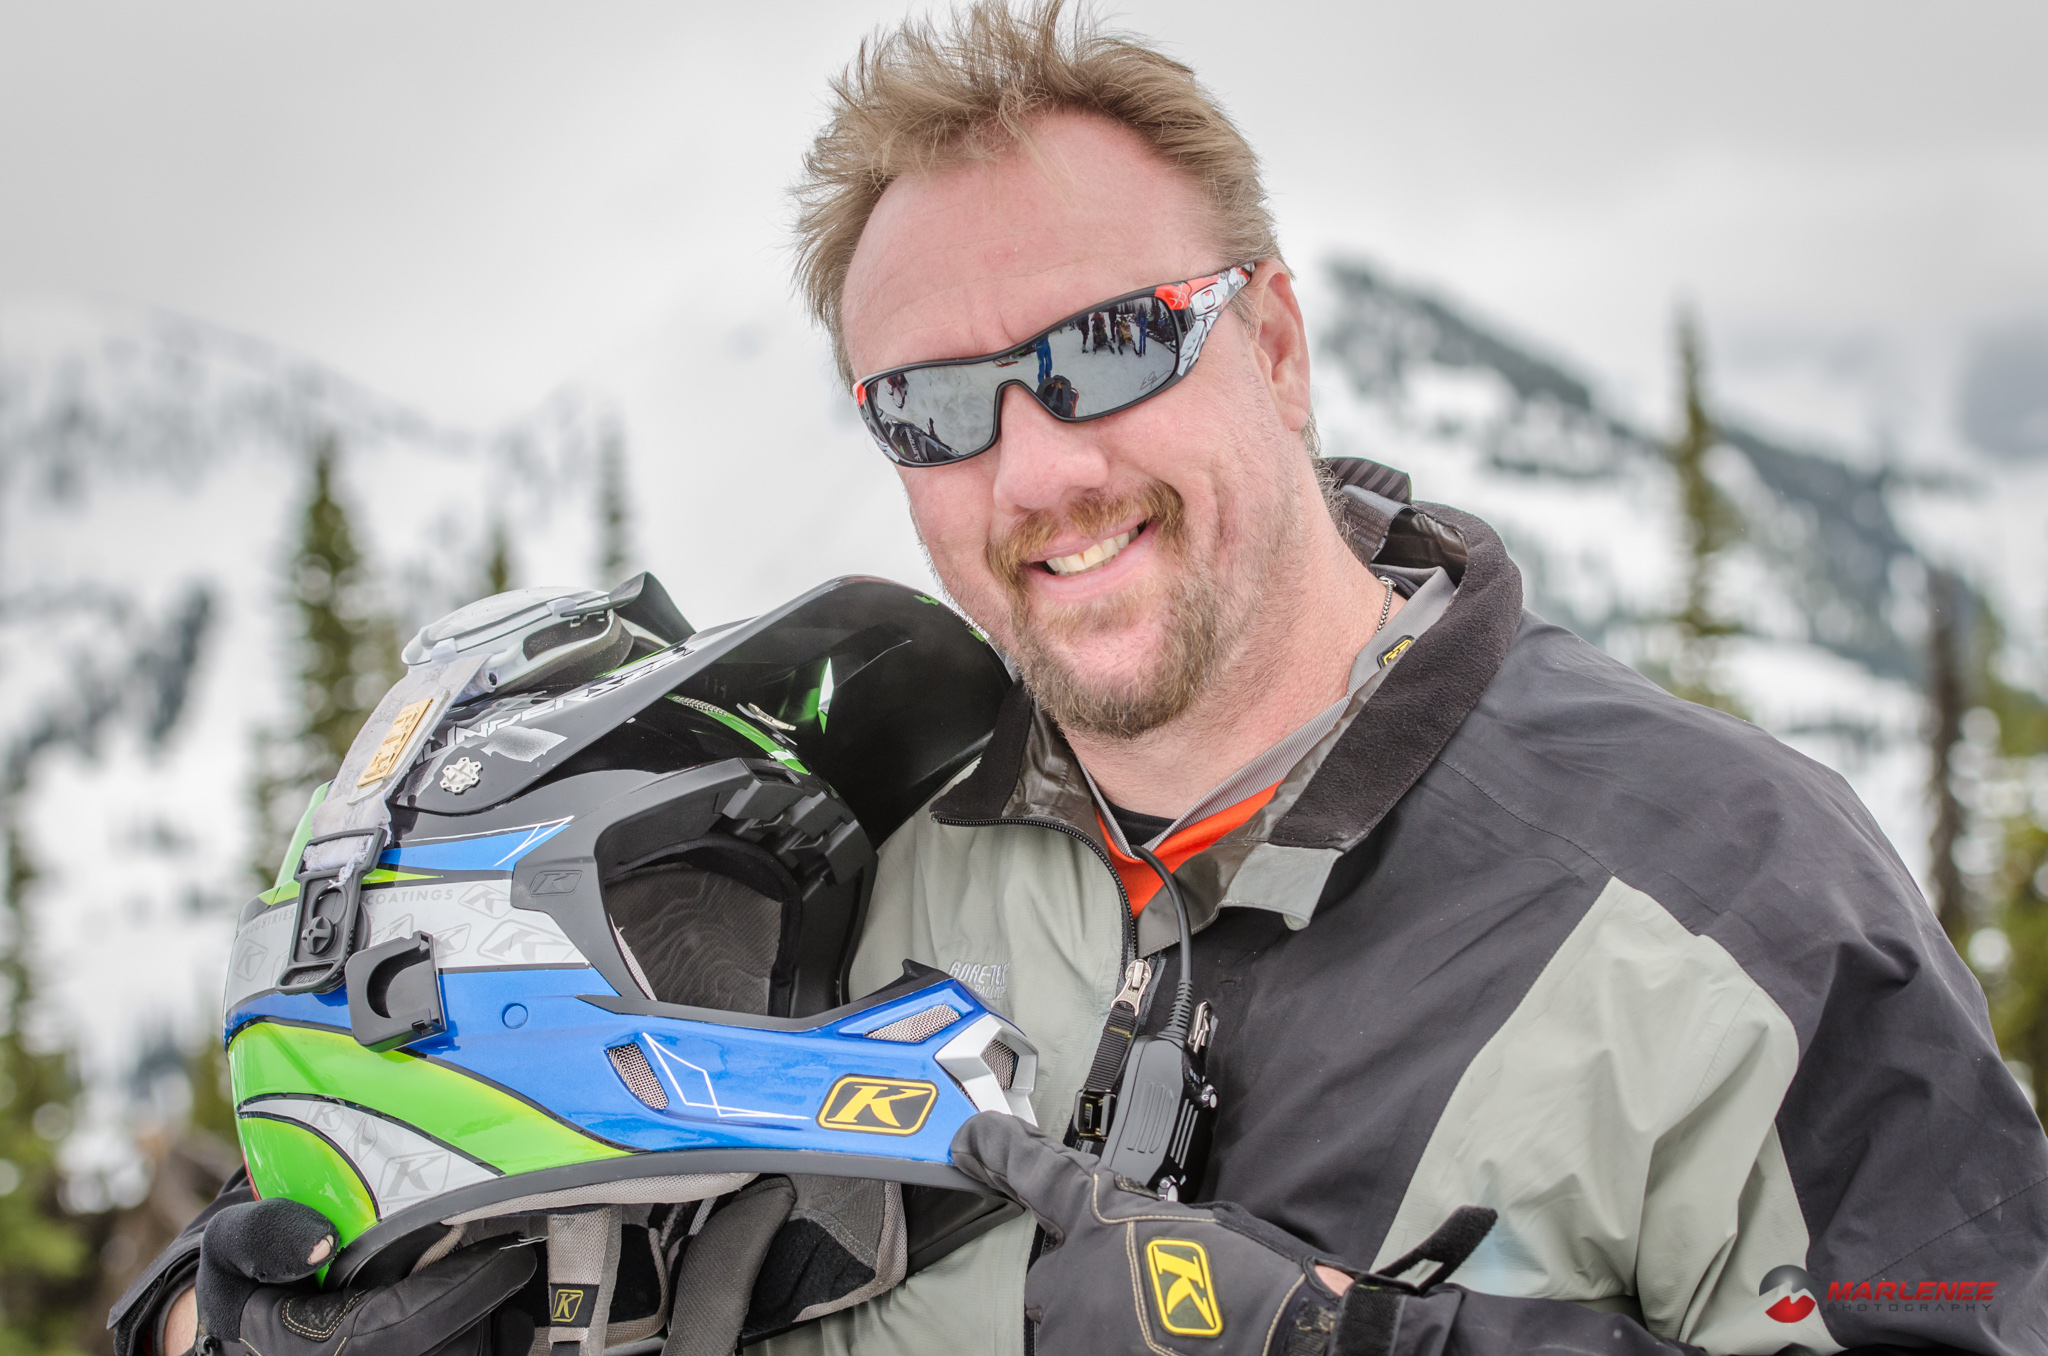 2016 Klim Catalog - Jim Phelan